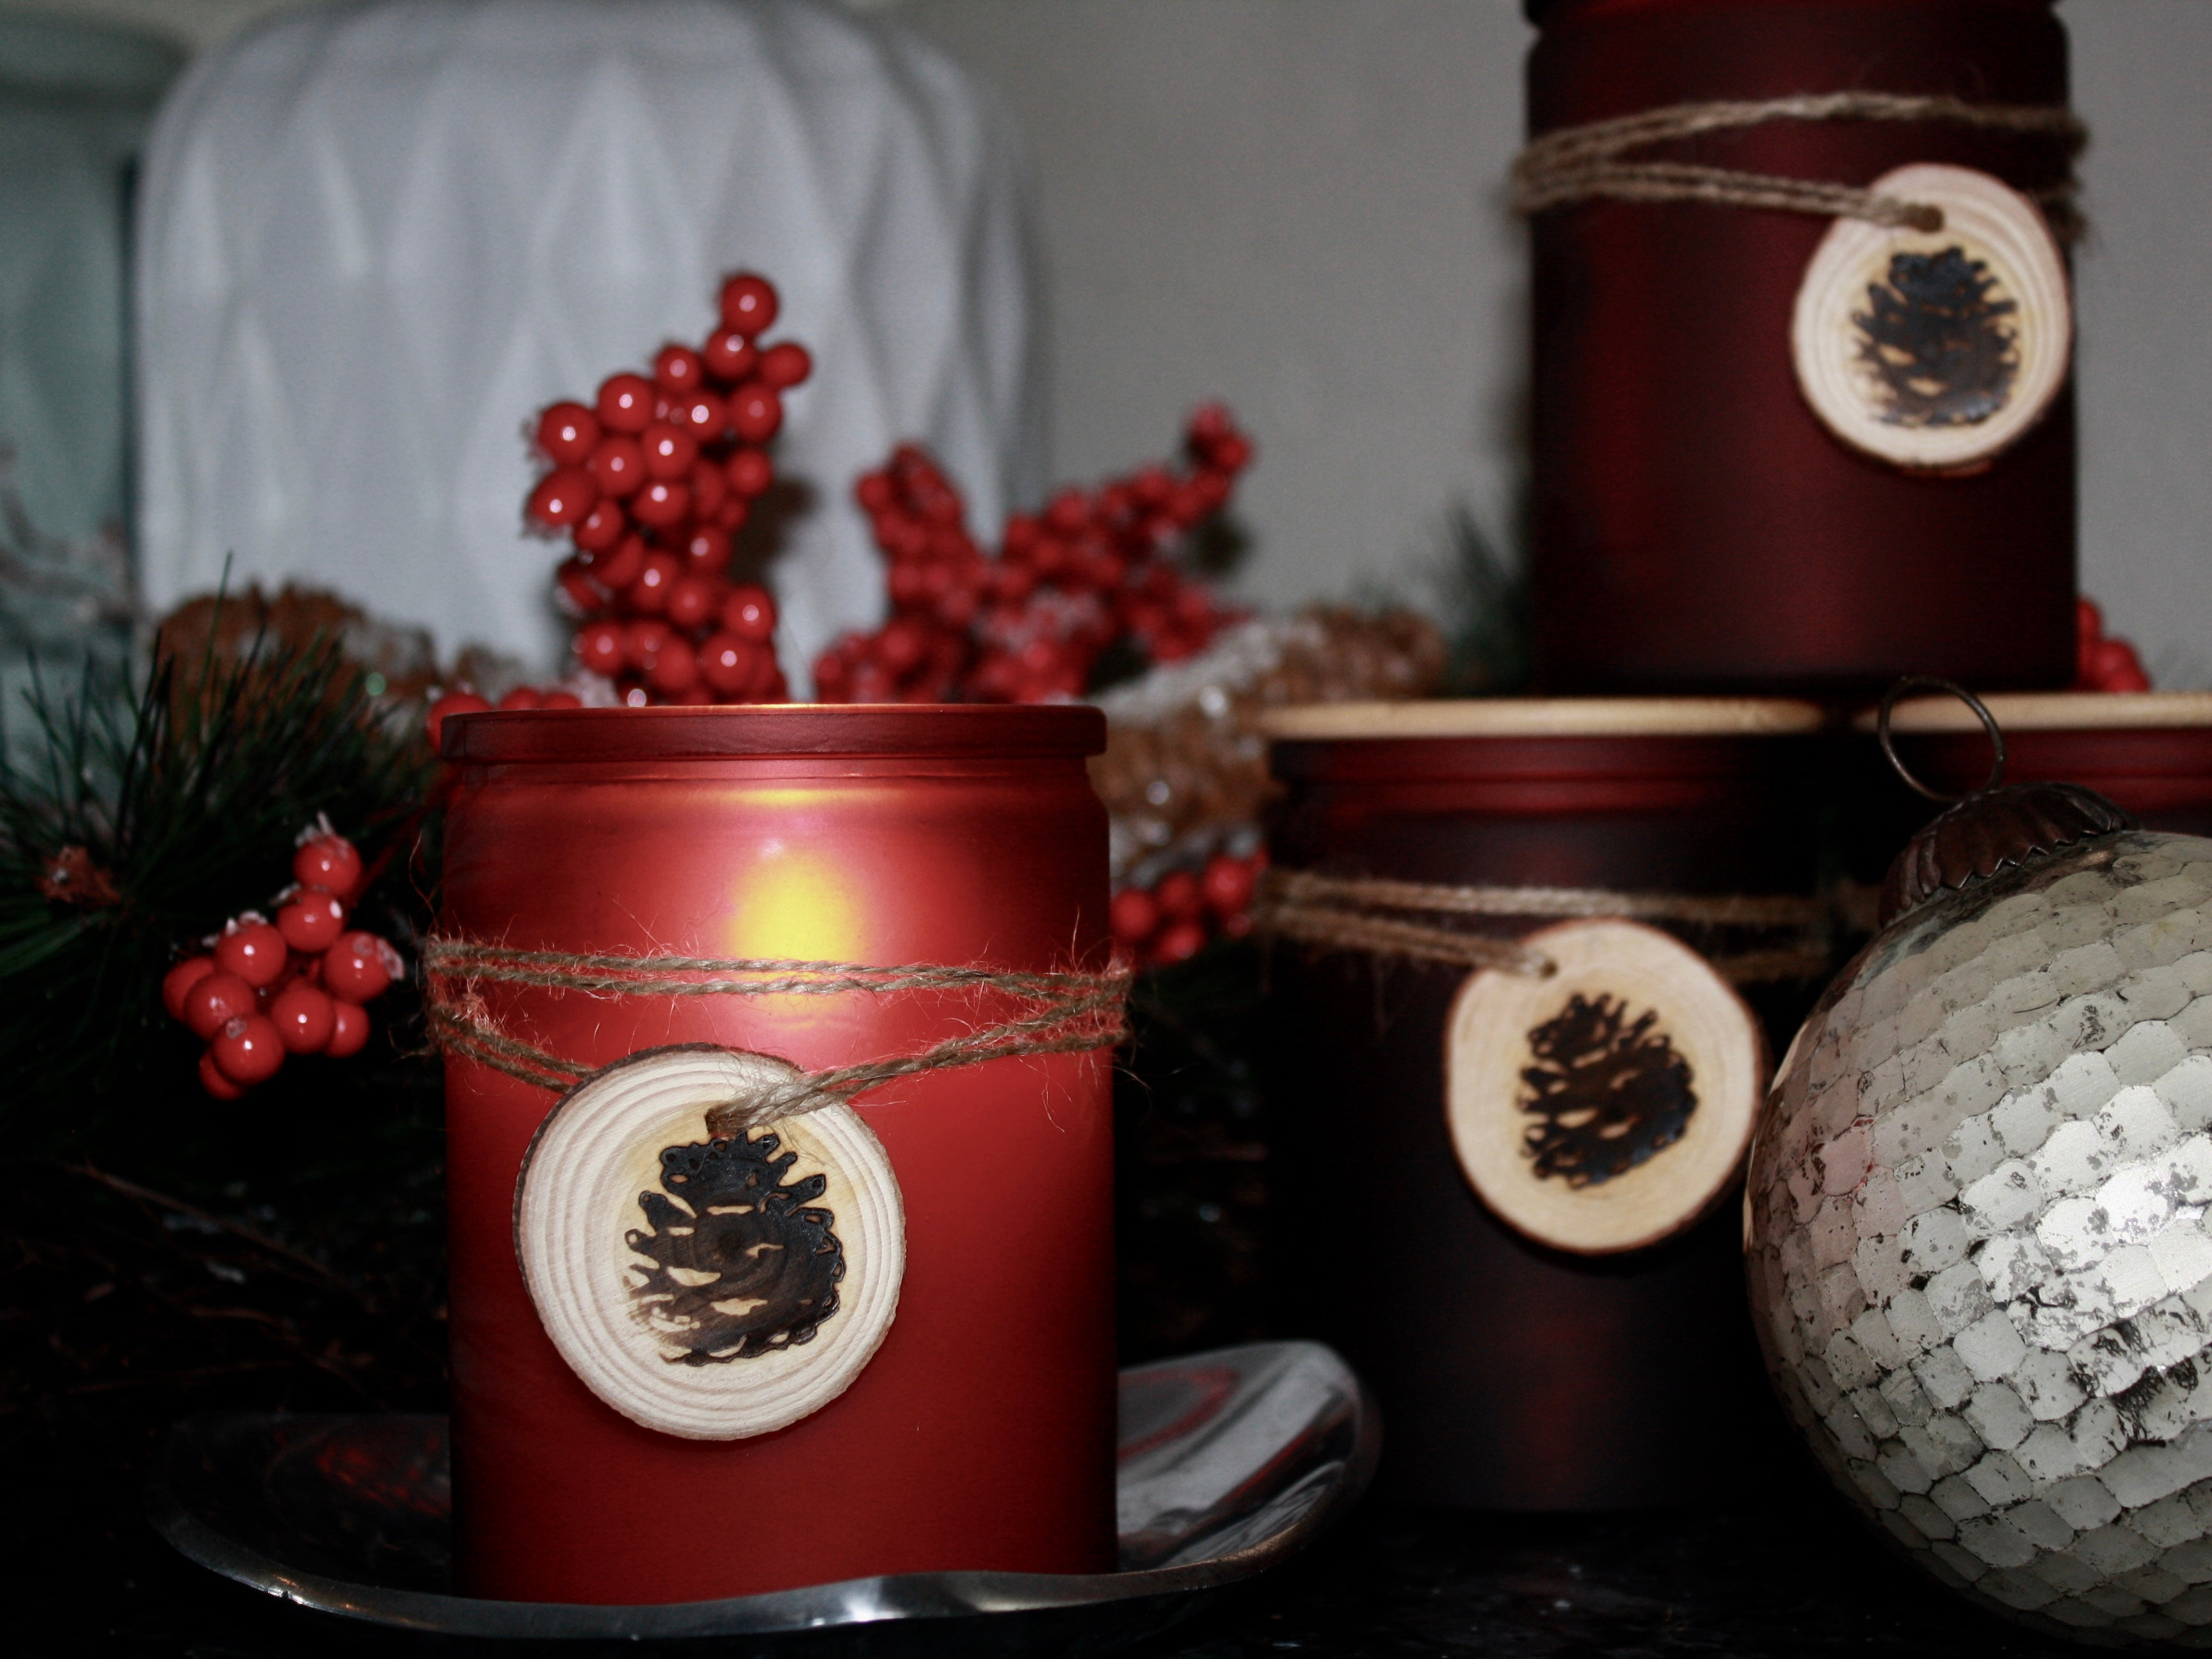 Festive Pomegranate - 12 oz. Custom Soy Blend Jar with Maple Wood Lid -  Available in Frosted White, Red or Pine